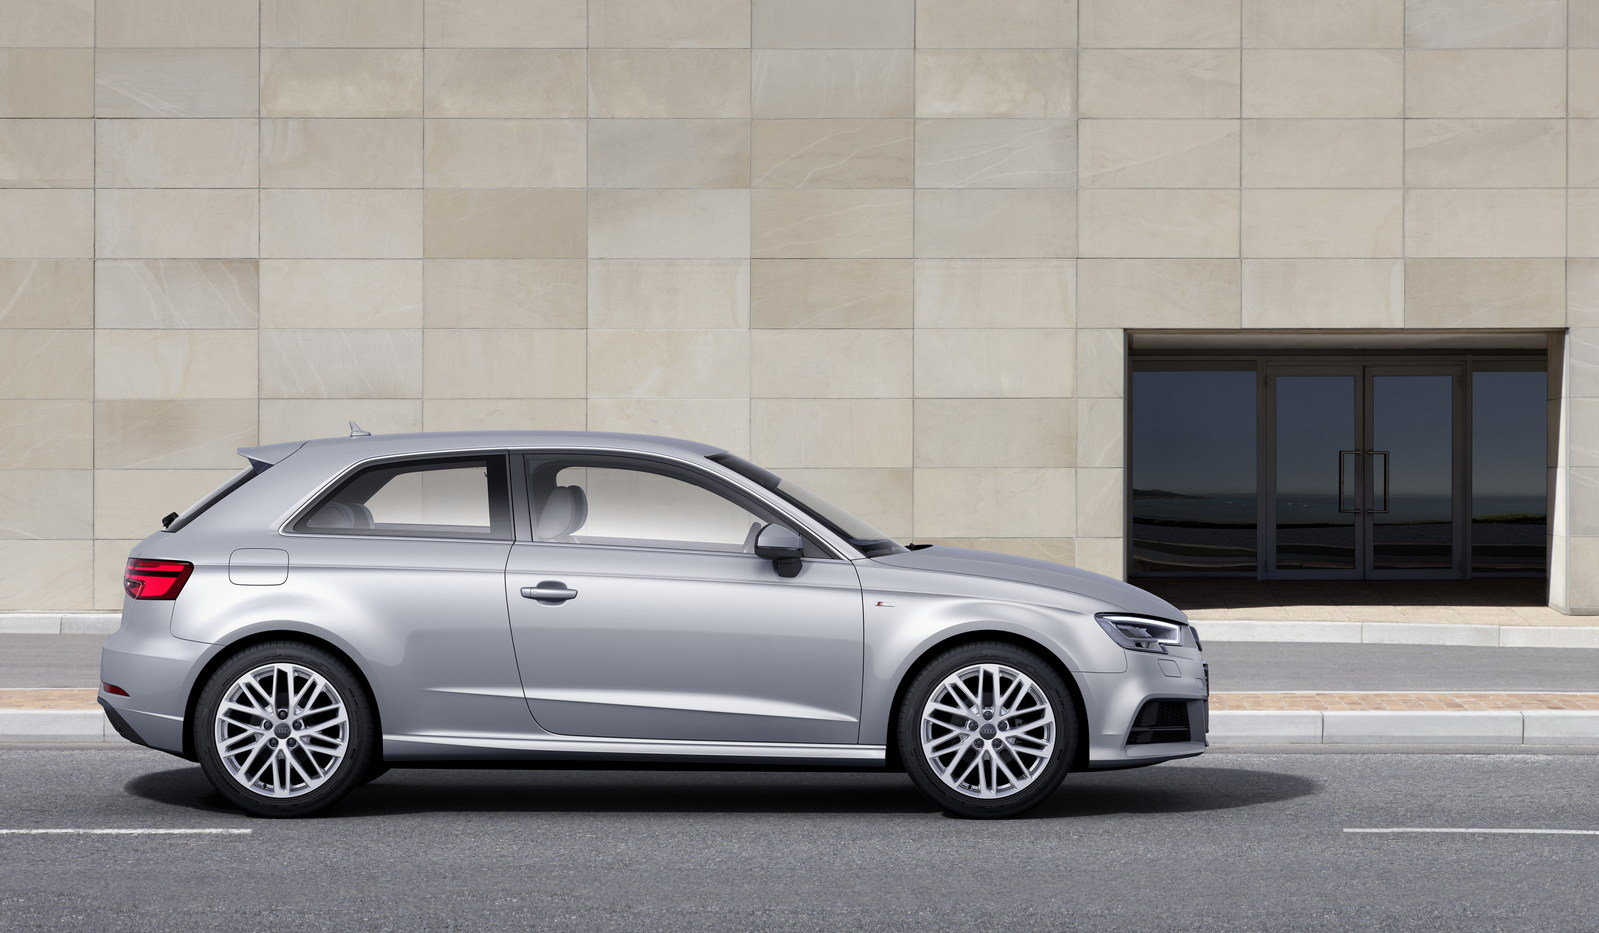 2017 audi a3 hatchback picture 671784 car review top speed. Black Bedroom Furniture Sets. Home Design Ideas